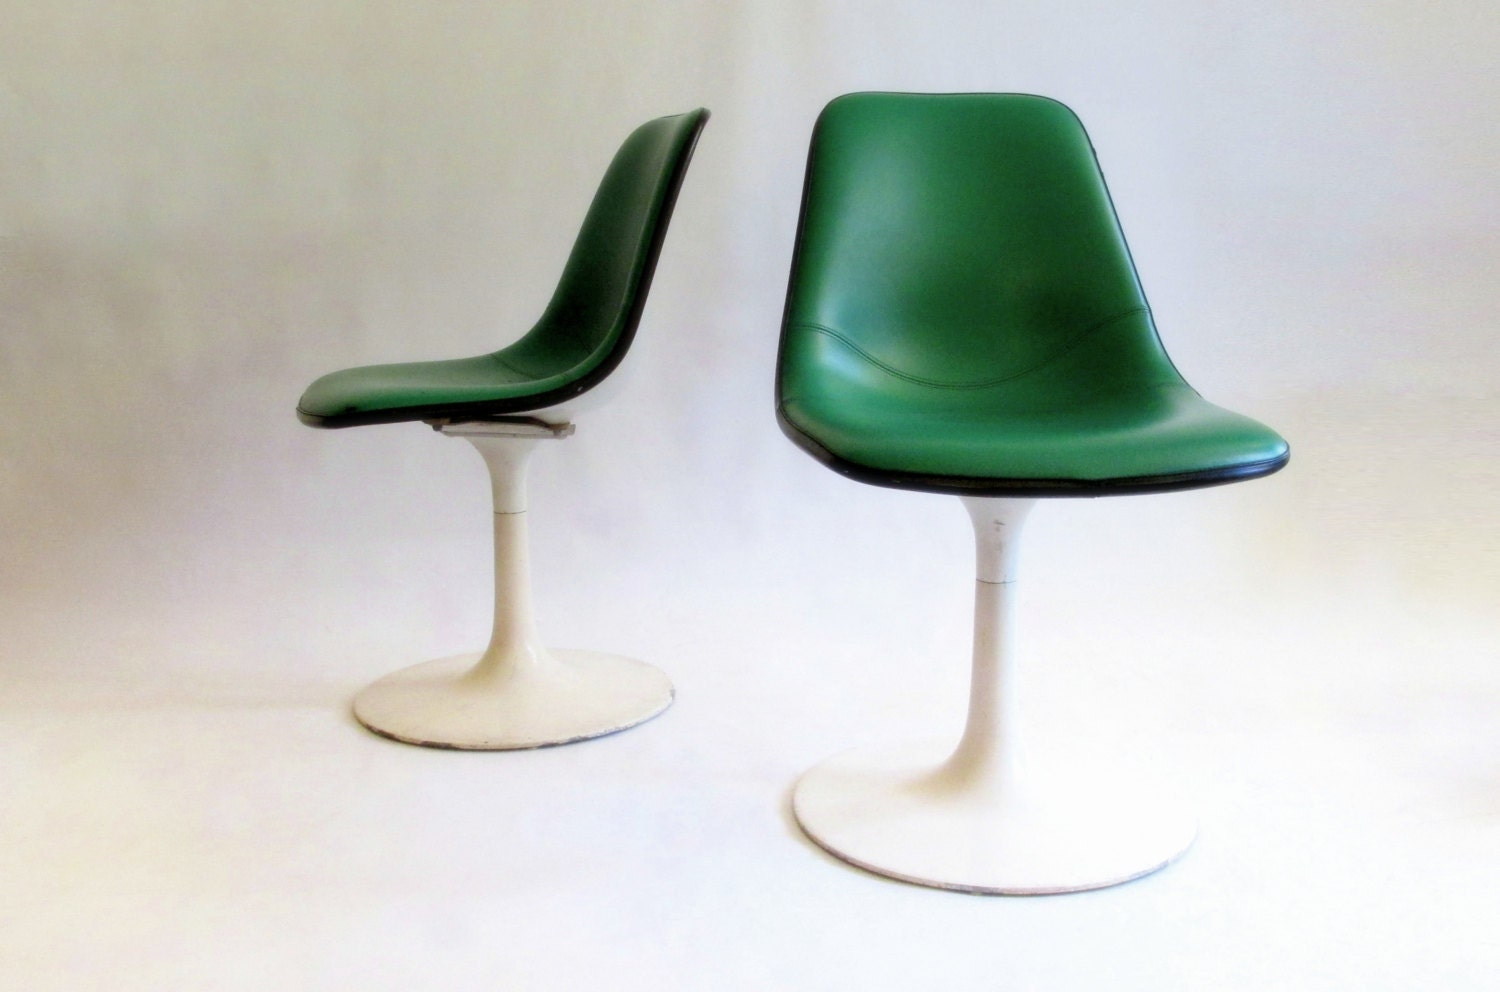 Green Fiberglass Pedestal Chair. Mid Century. Tulip Chair. Naugahyde. Krueger Metal Products. Eames Era 1 of 2 - owlsongvintage